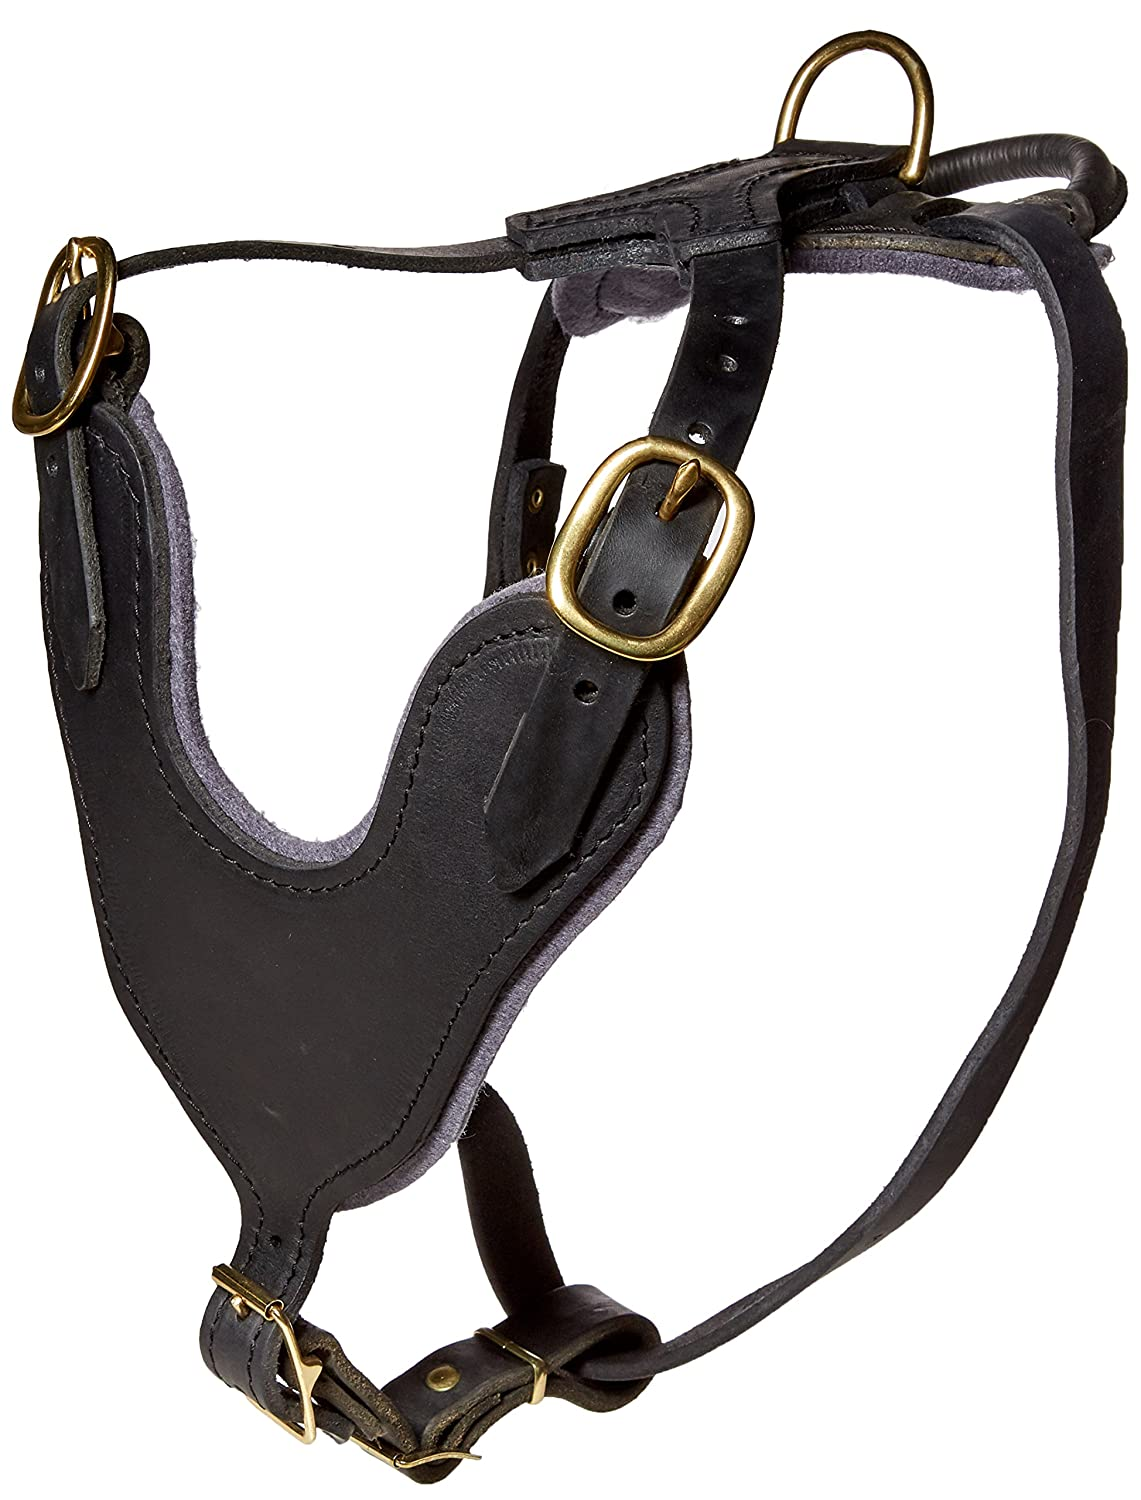 Dean & Tyler D&T Basic Handle SB-M Leather Basic Brass Hardware Dog Harness with Handle, Black, Medium-Fits Girth Size  71cm to 94cm